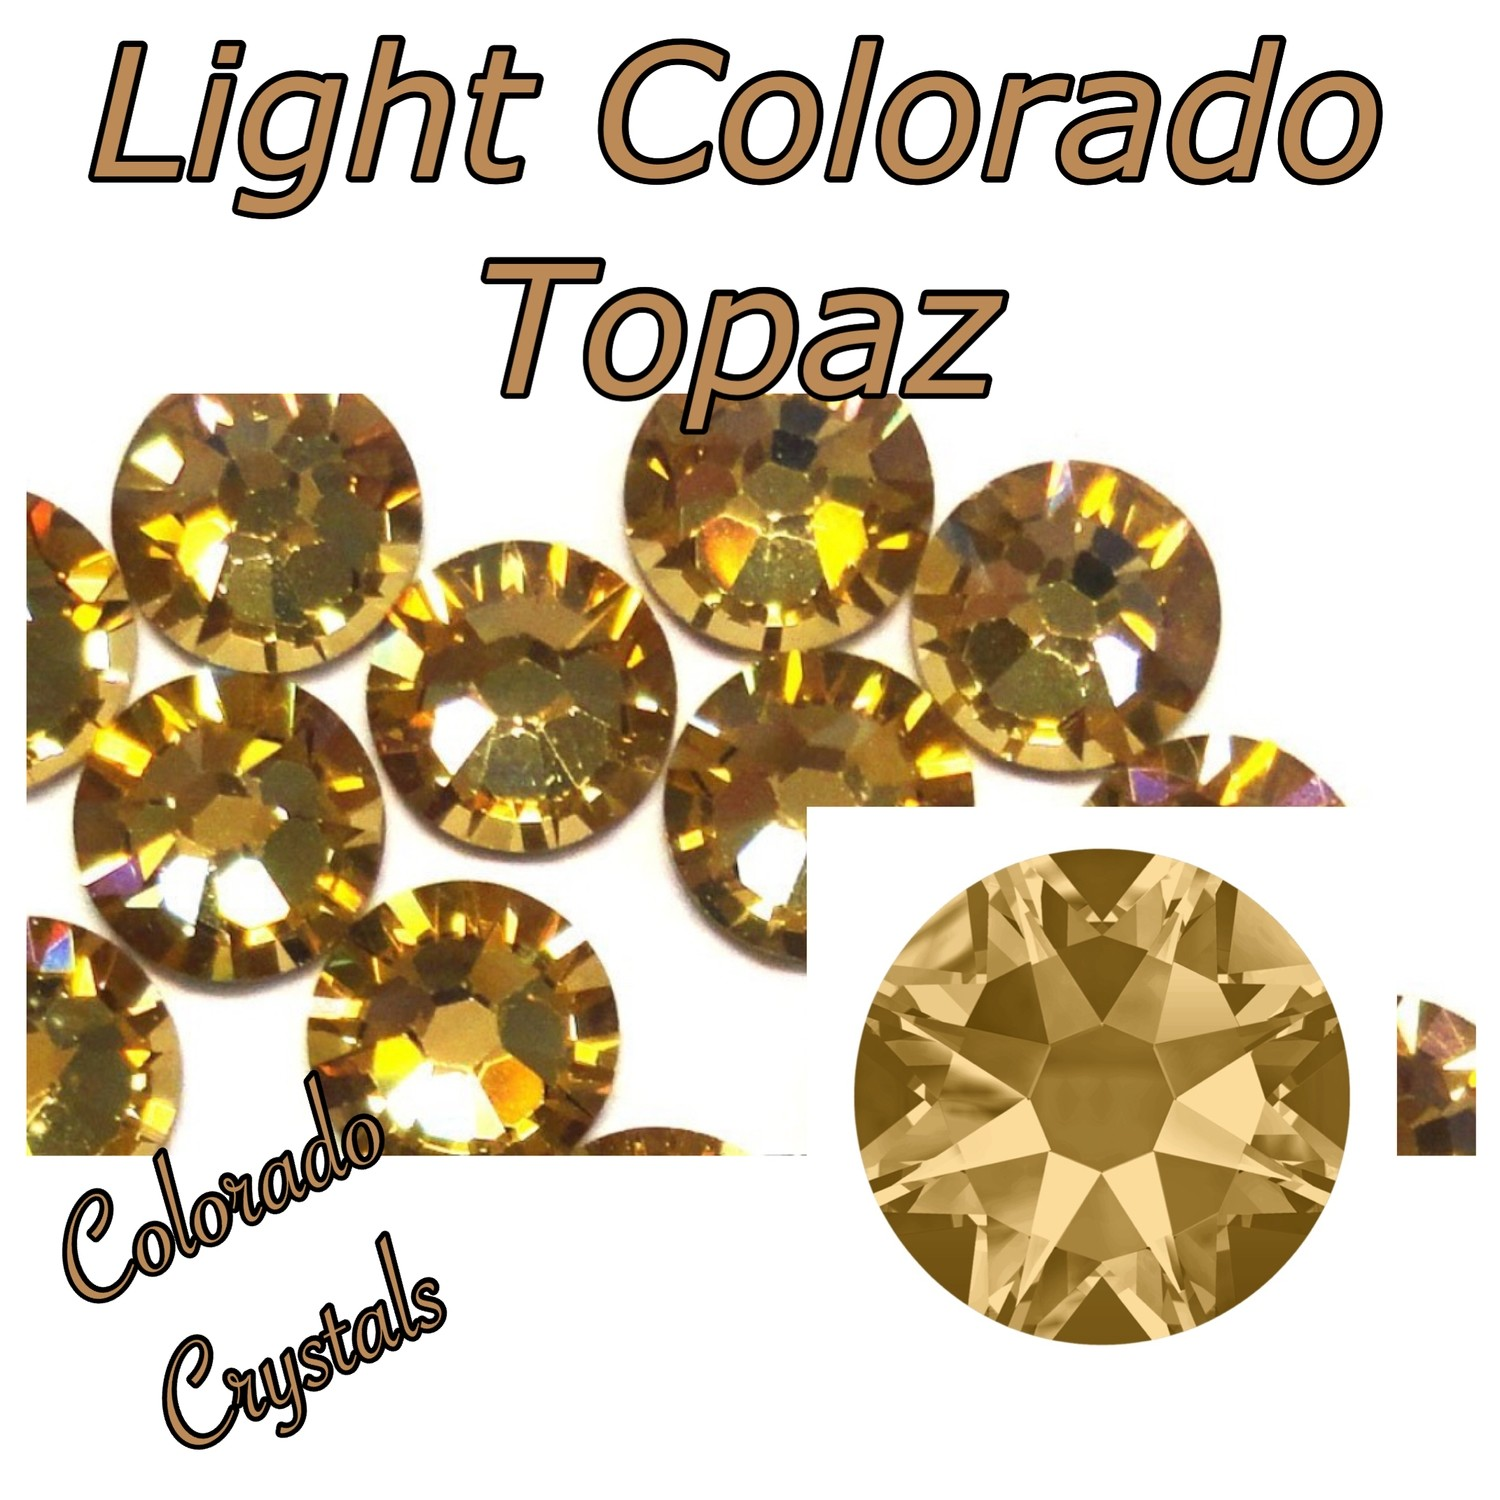 Light Colorado Topaz Discounted Swarovski Nail Art 5ss